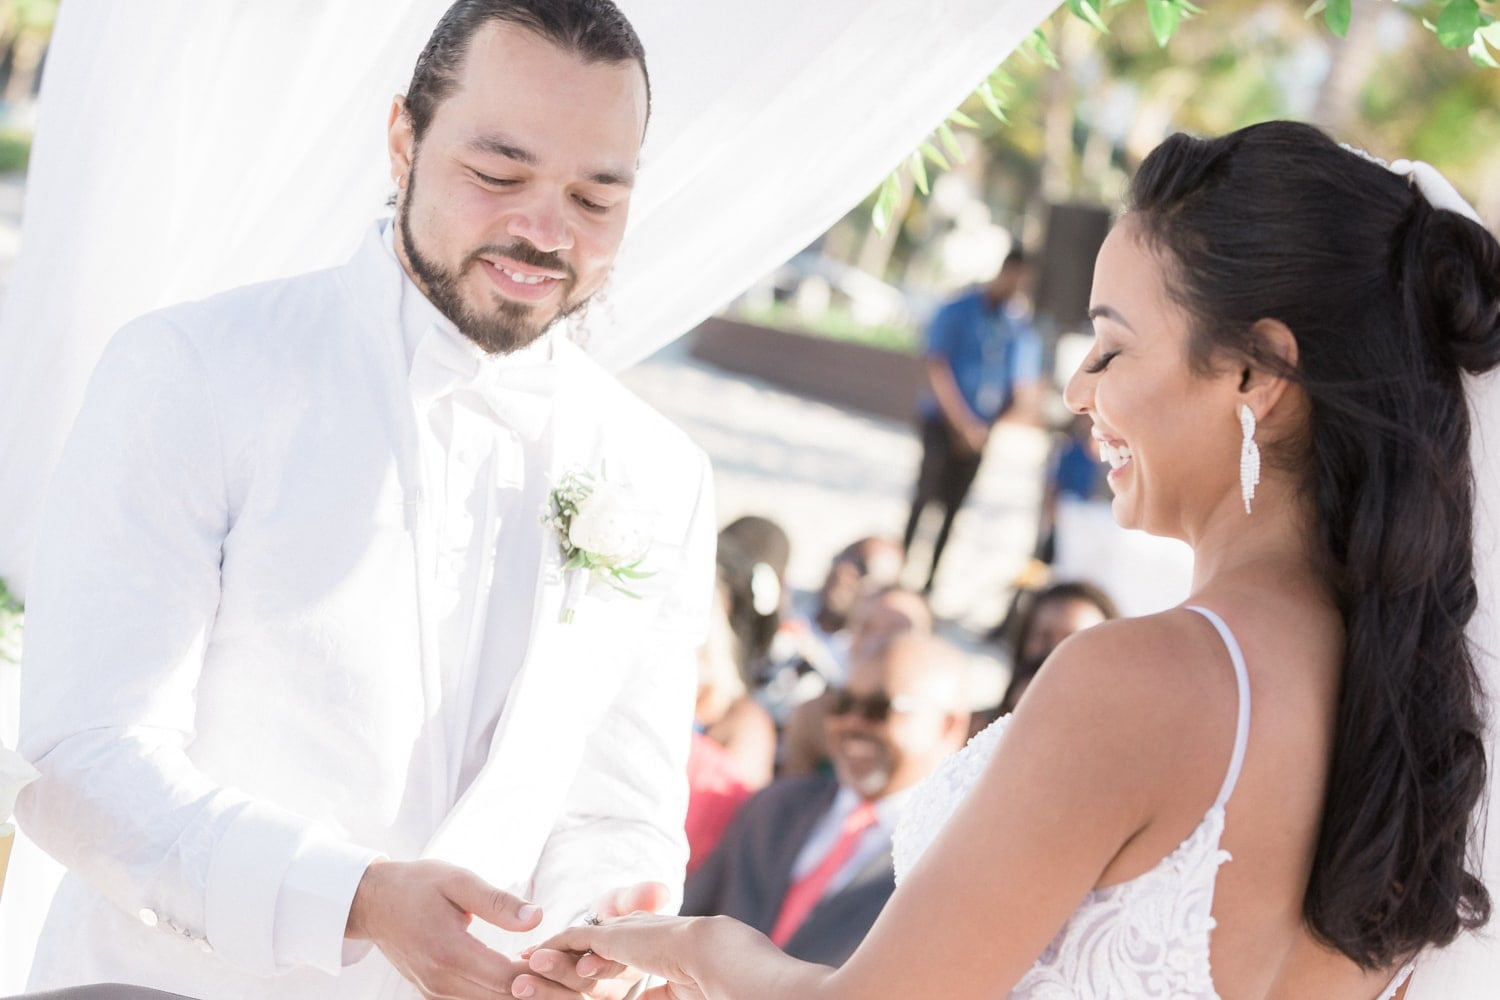 Photo of bride and groom exchanging rings during beach wedding ceremony.